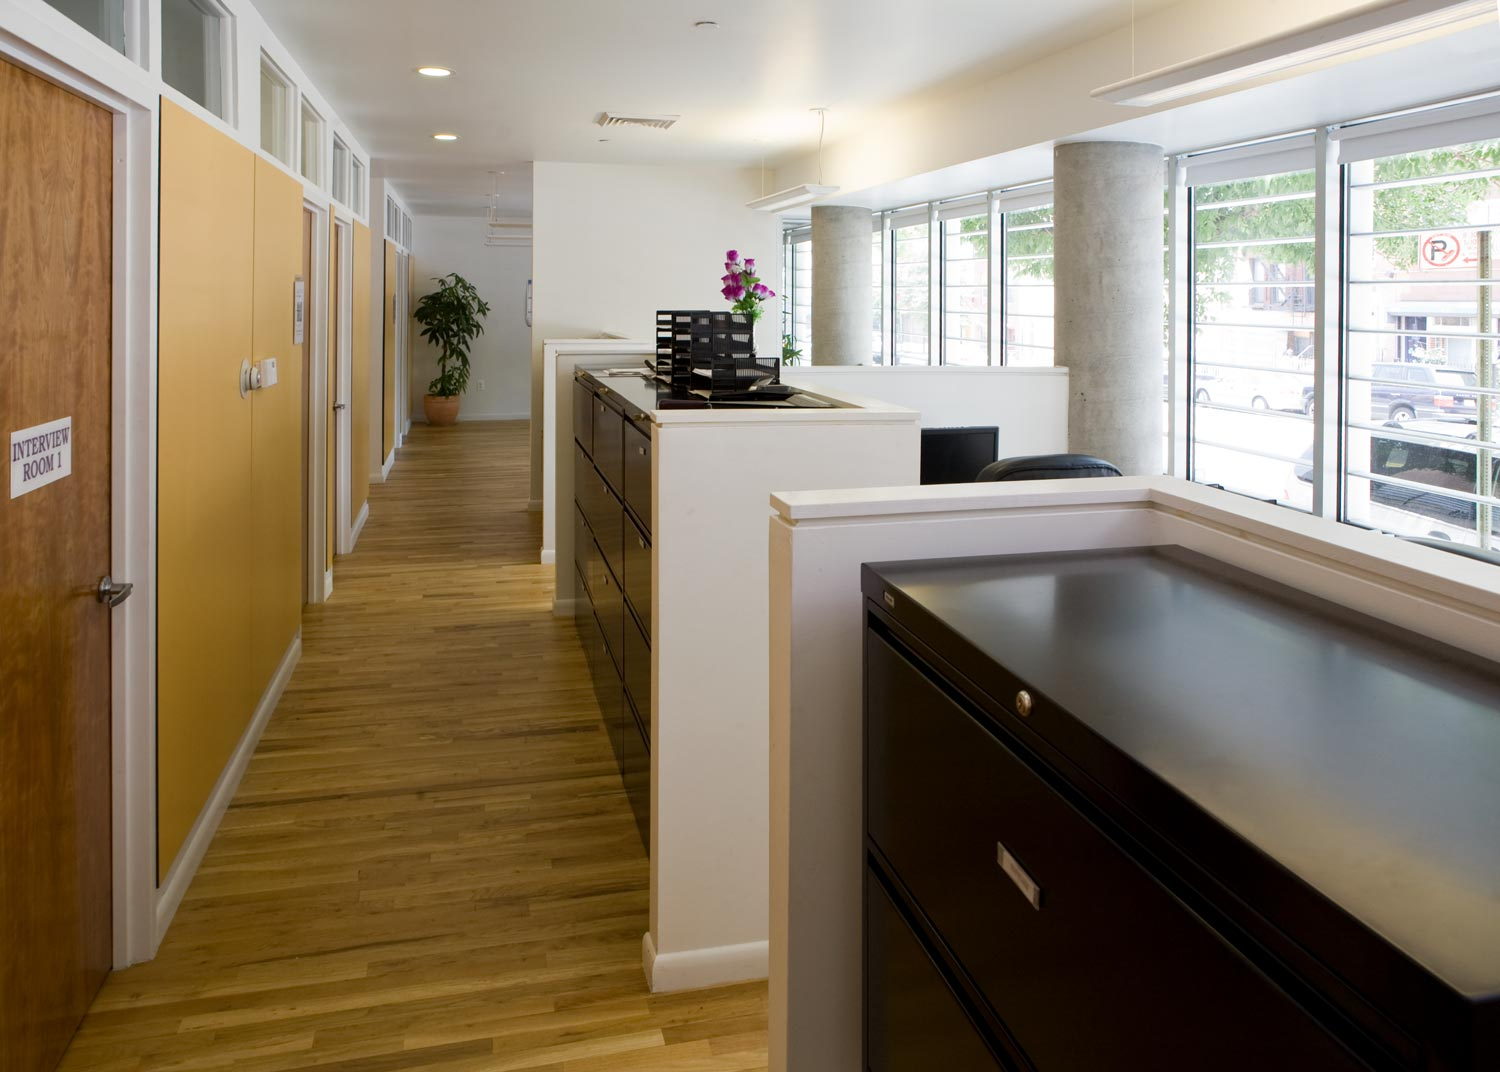 Social services office on site provide residents with opportunities for therapeutic interventions.